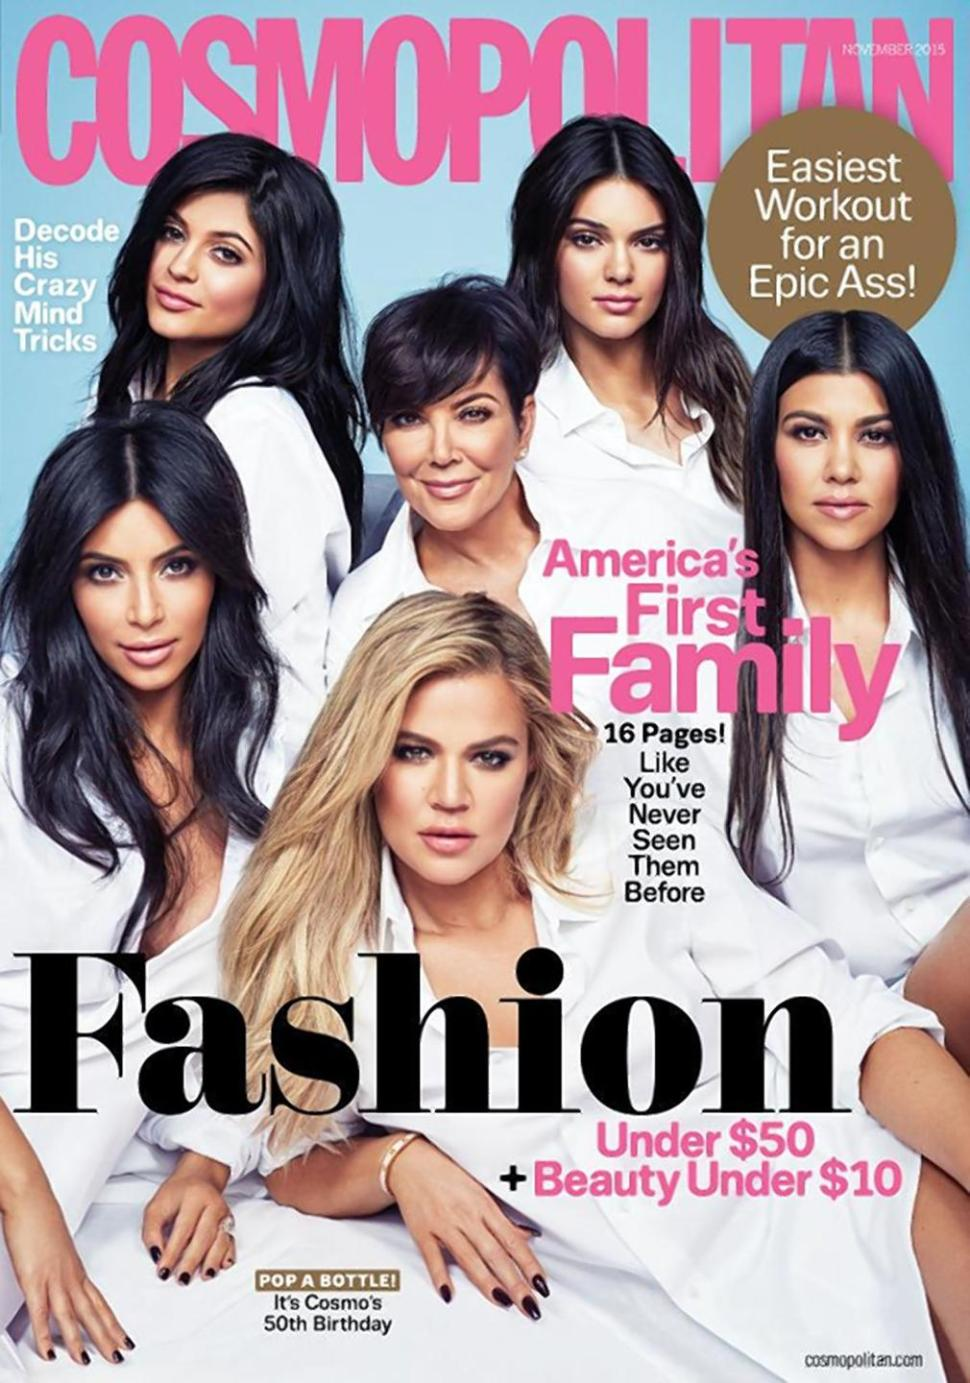 cosmo-kardashian-first-family-offend-1006-1